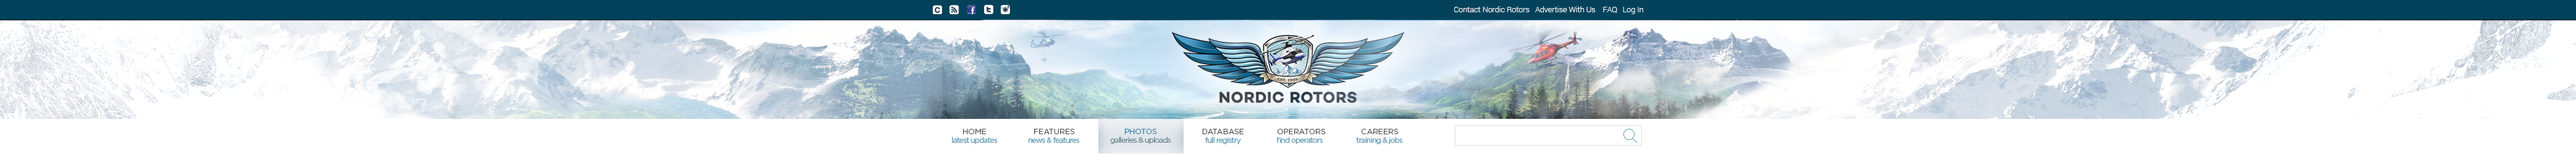 Quick brush-up of Nordic Rotors website header